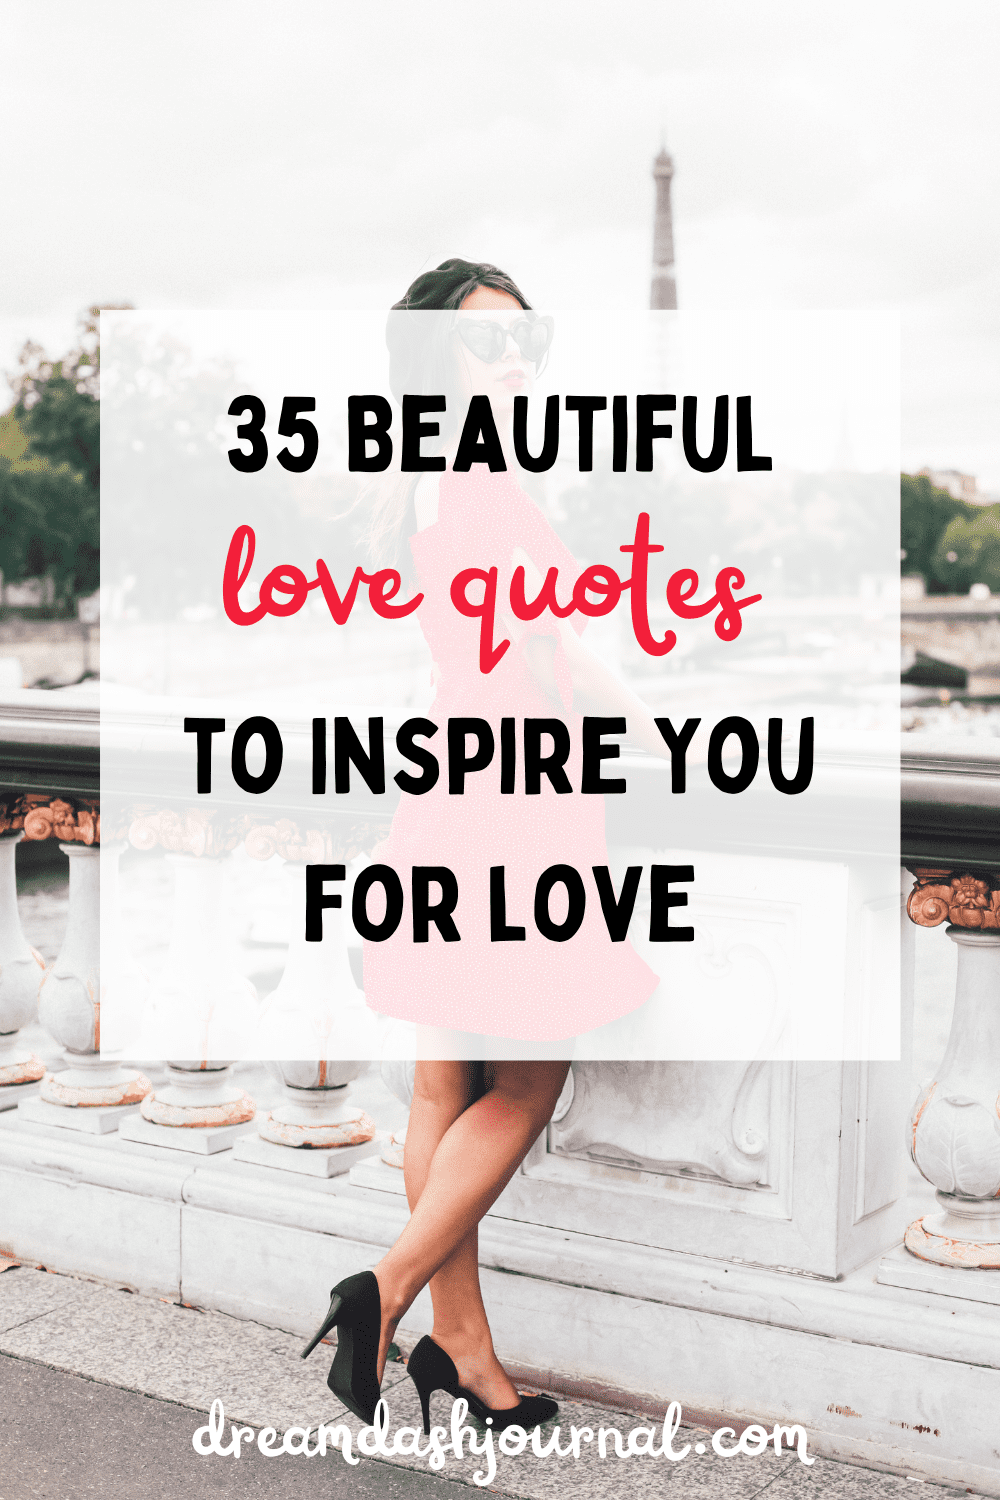 Love Makes Life Beautiful: Quotes to Inspire You For Love